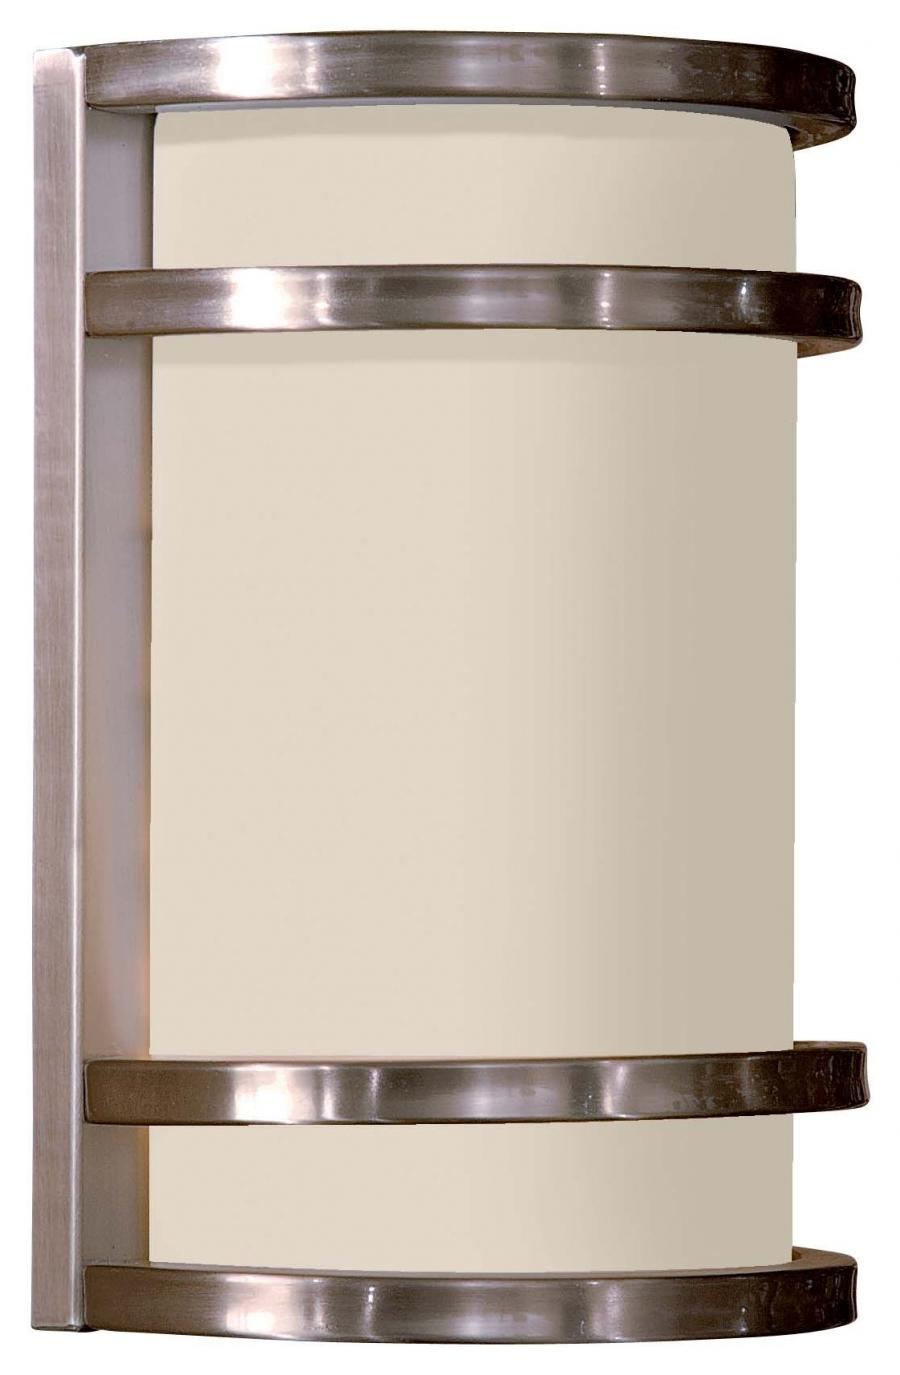 The Great Outdoors® 1 Light Pocket Lantern in Brushed Stainless...